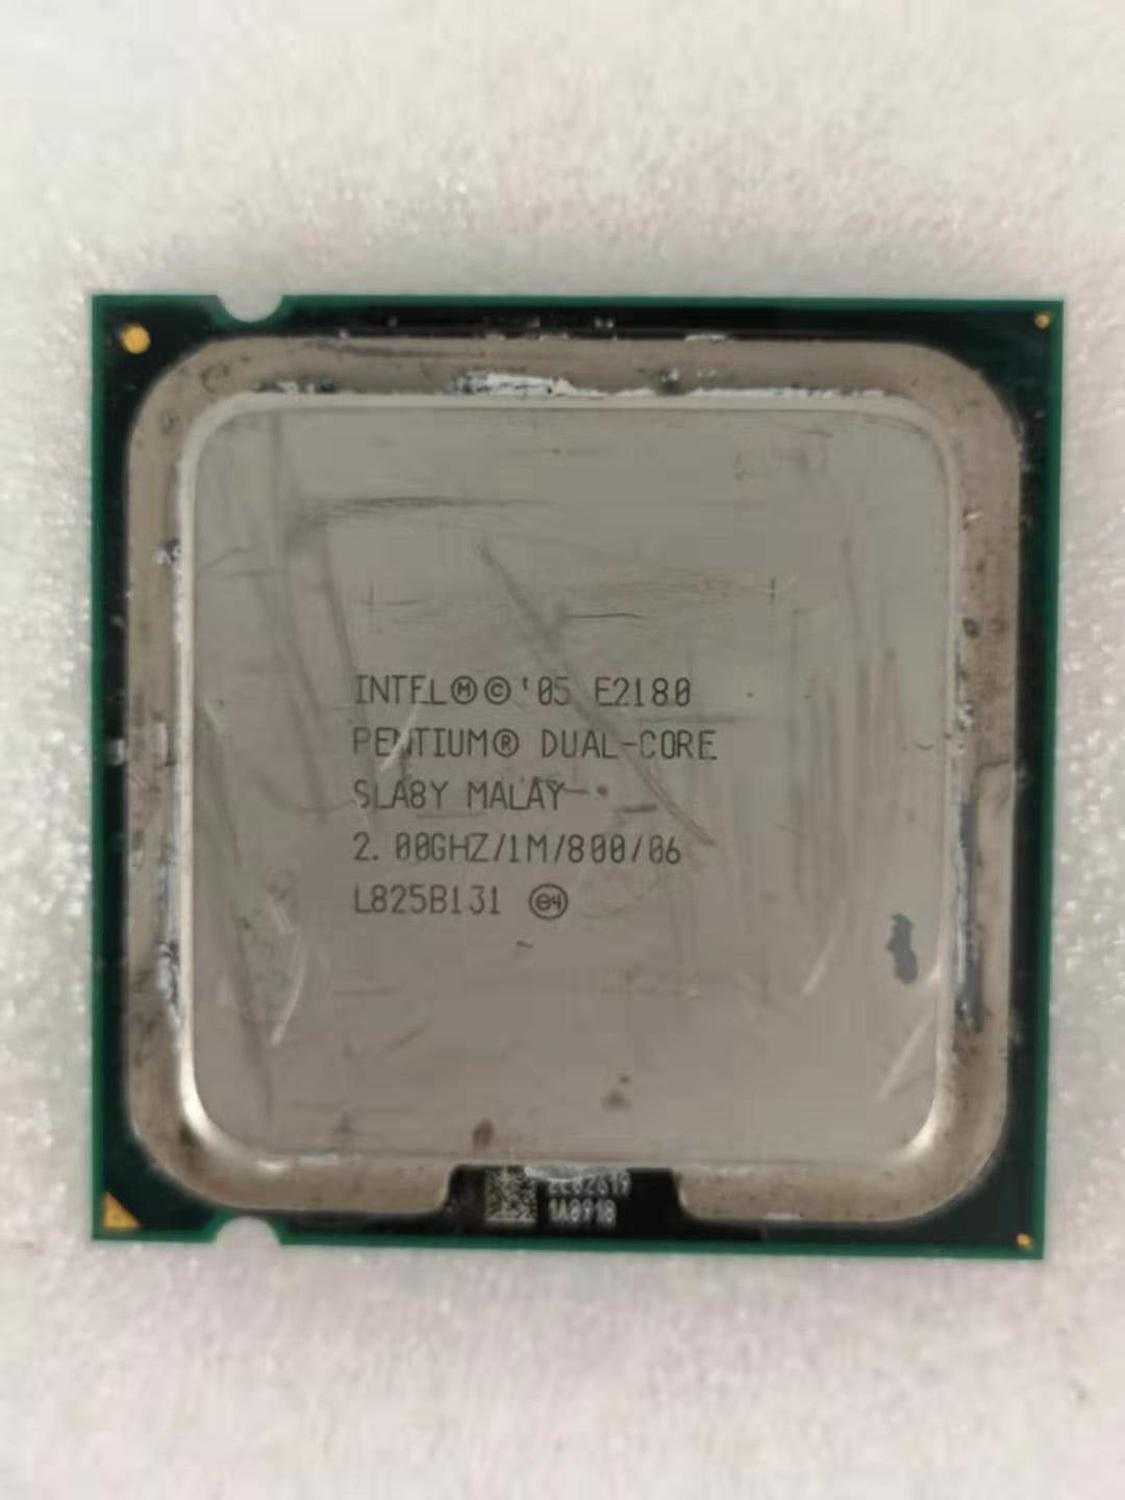 Intel Core 2 Duo E2180 Desktop Processor Dual-Core 2.0GHz 1MB Cache FSB 800MHz LGA 775 E 2180 Used CPU